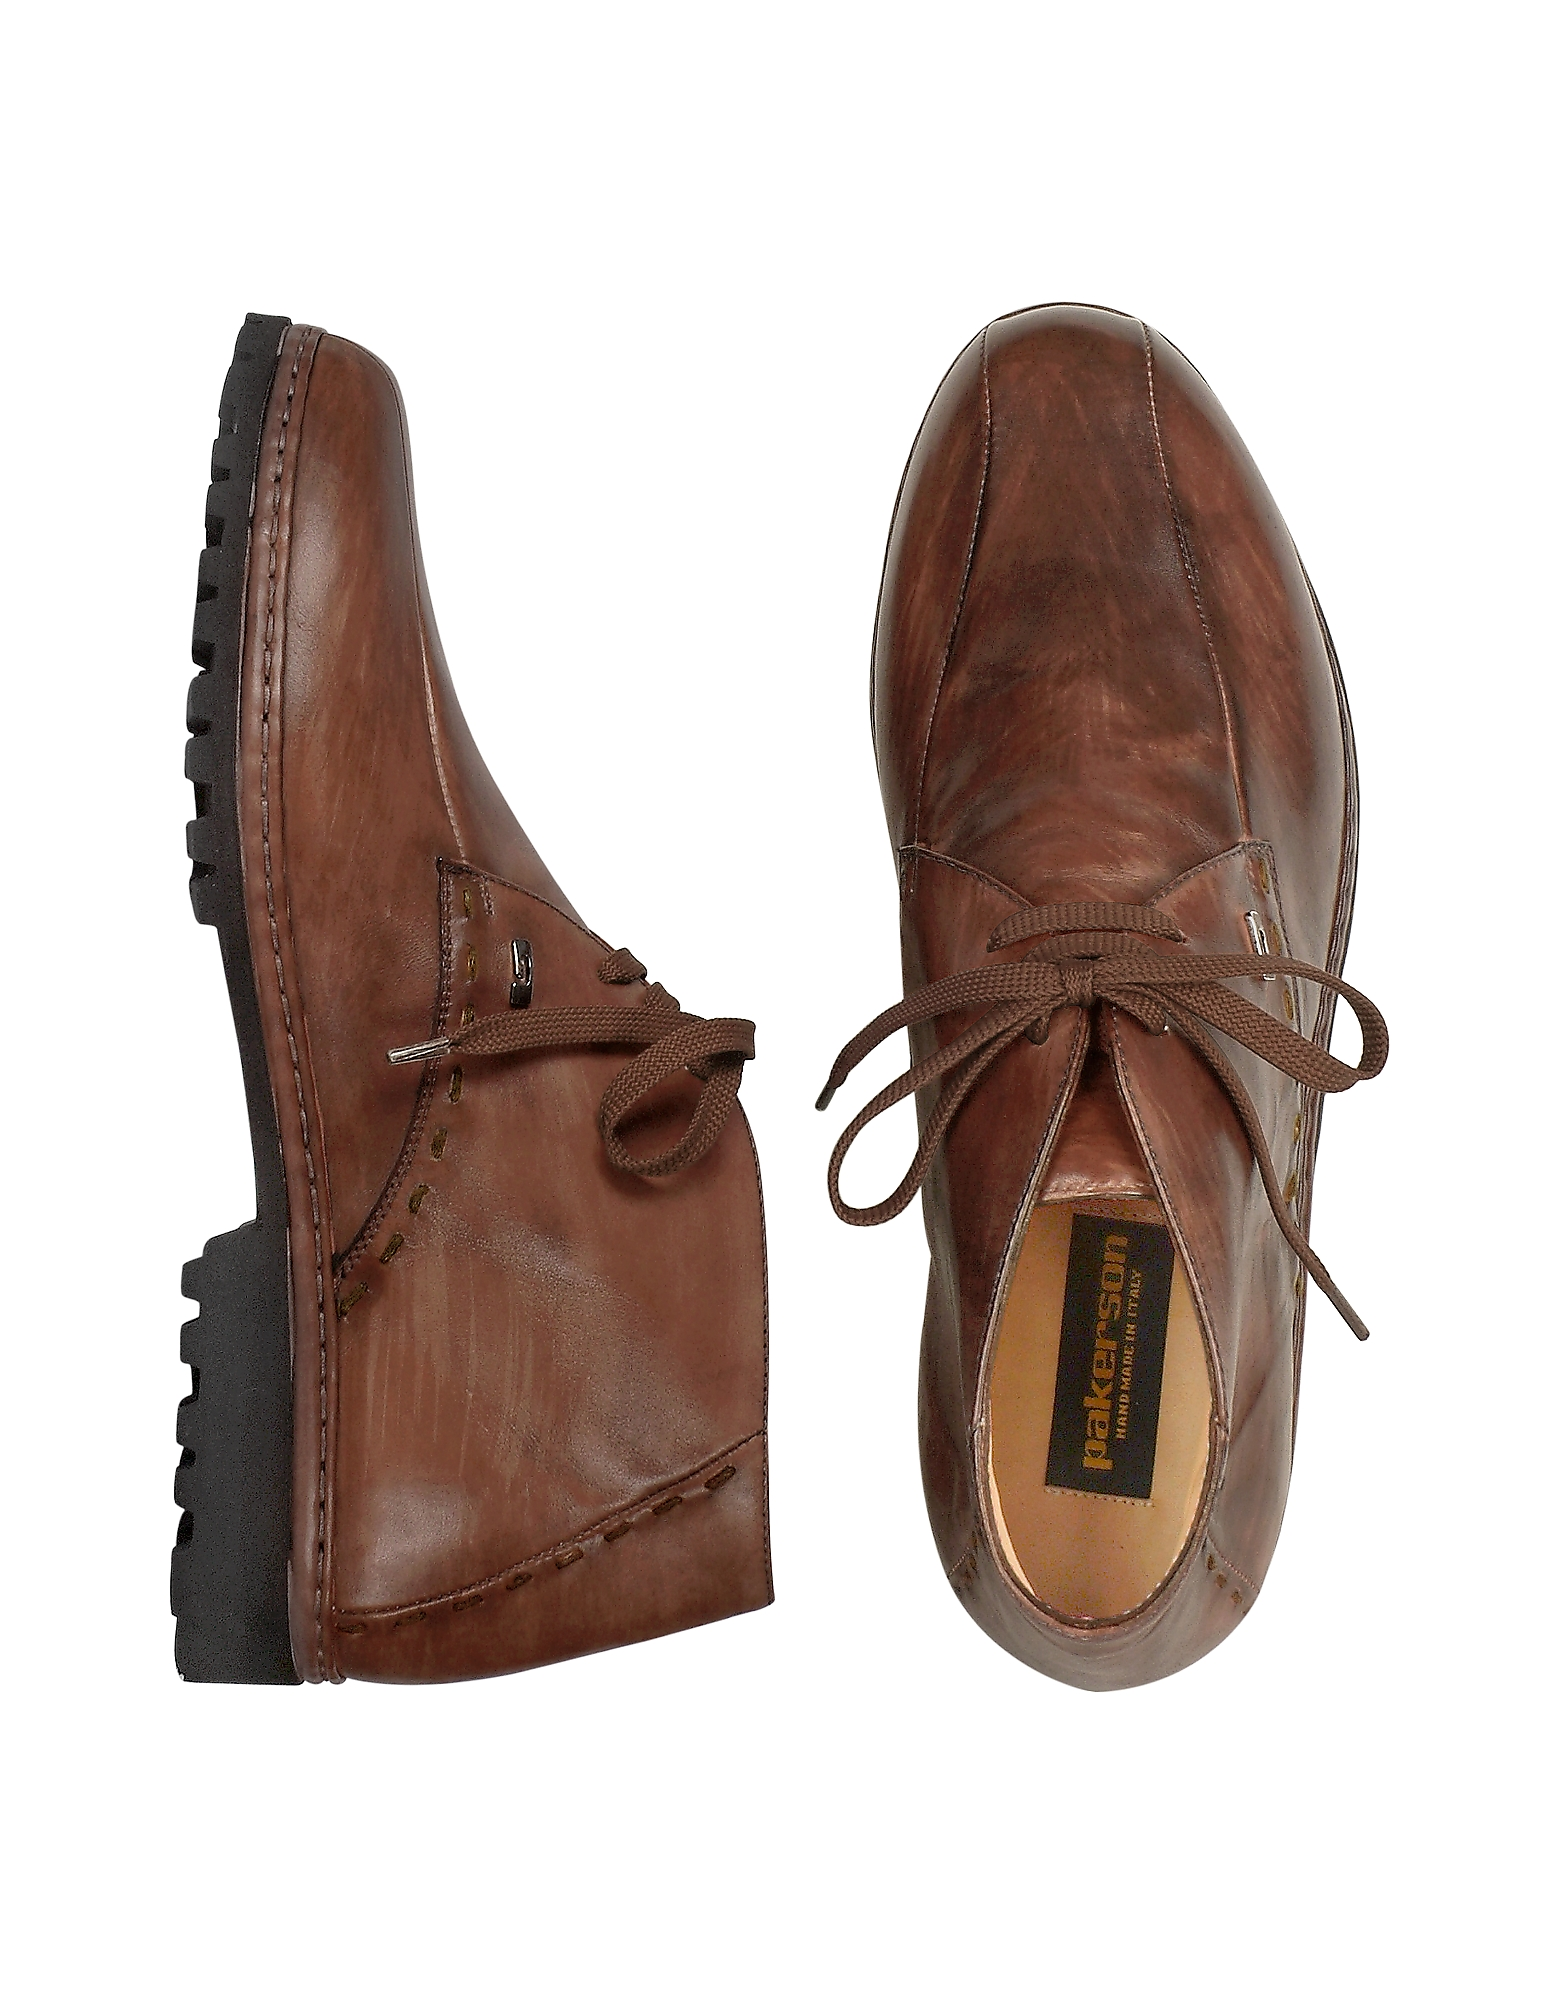 Pakerson Shoes, Brown Handmade Italian Leather Ankle Boots